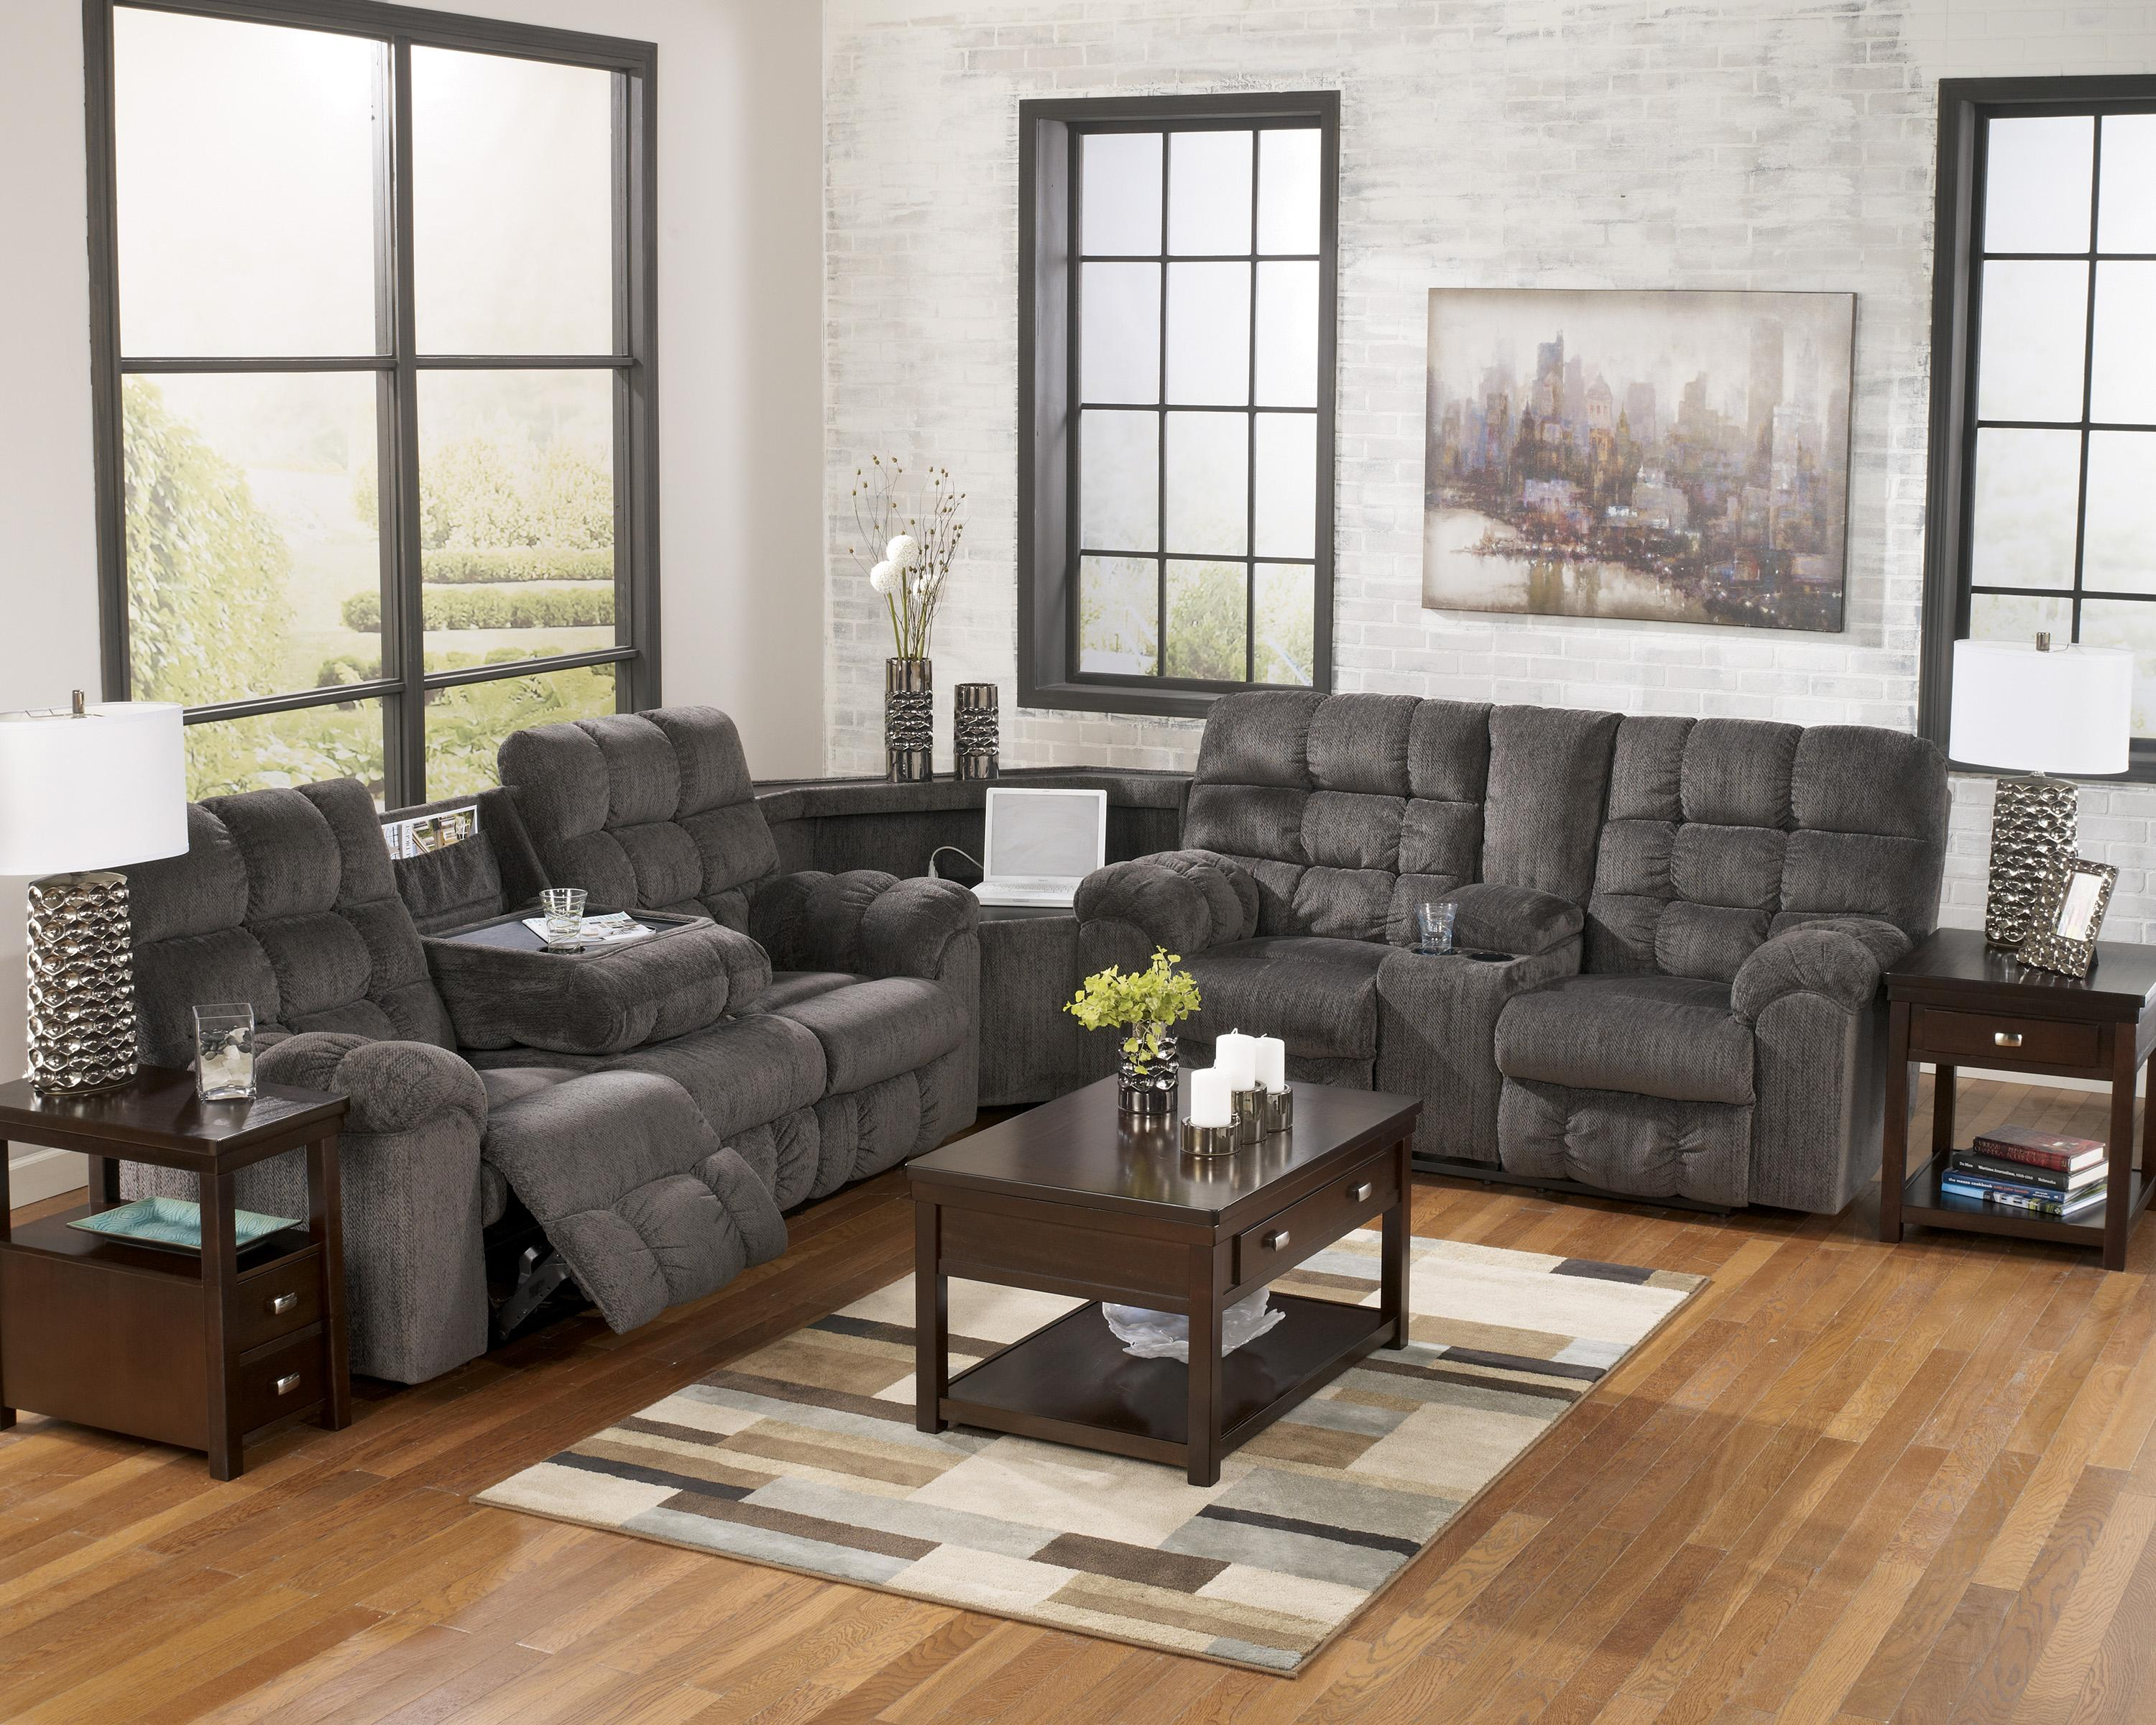 Signature Design by Ashley Acieona - Slate Reclining Sectional with Right Side Loveseat - Item Number: 5830089+77+94